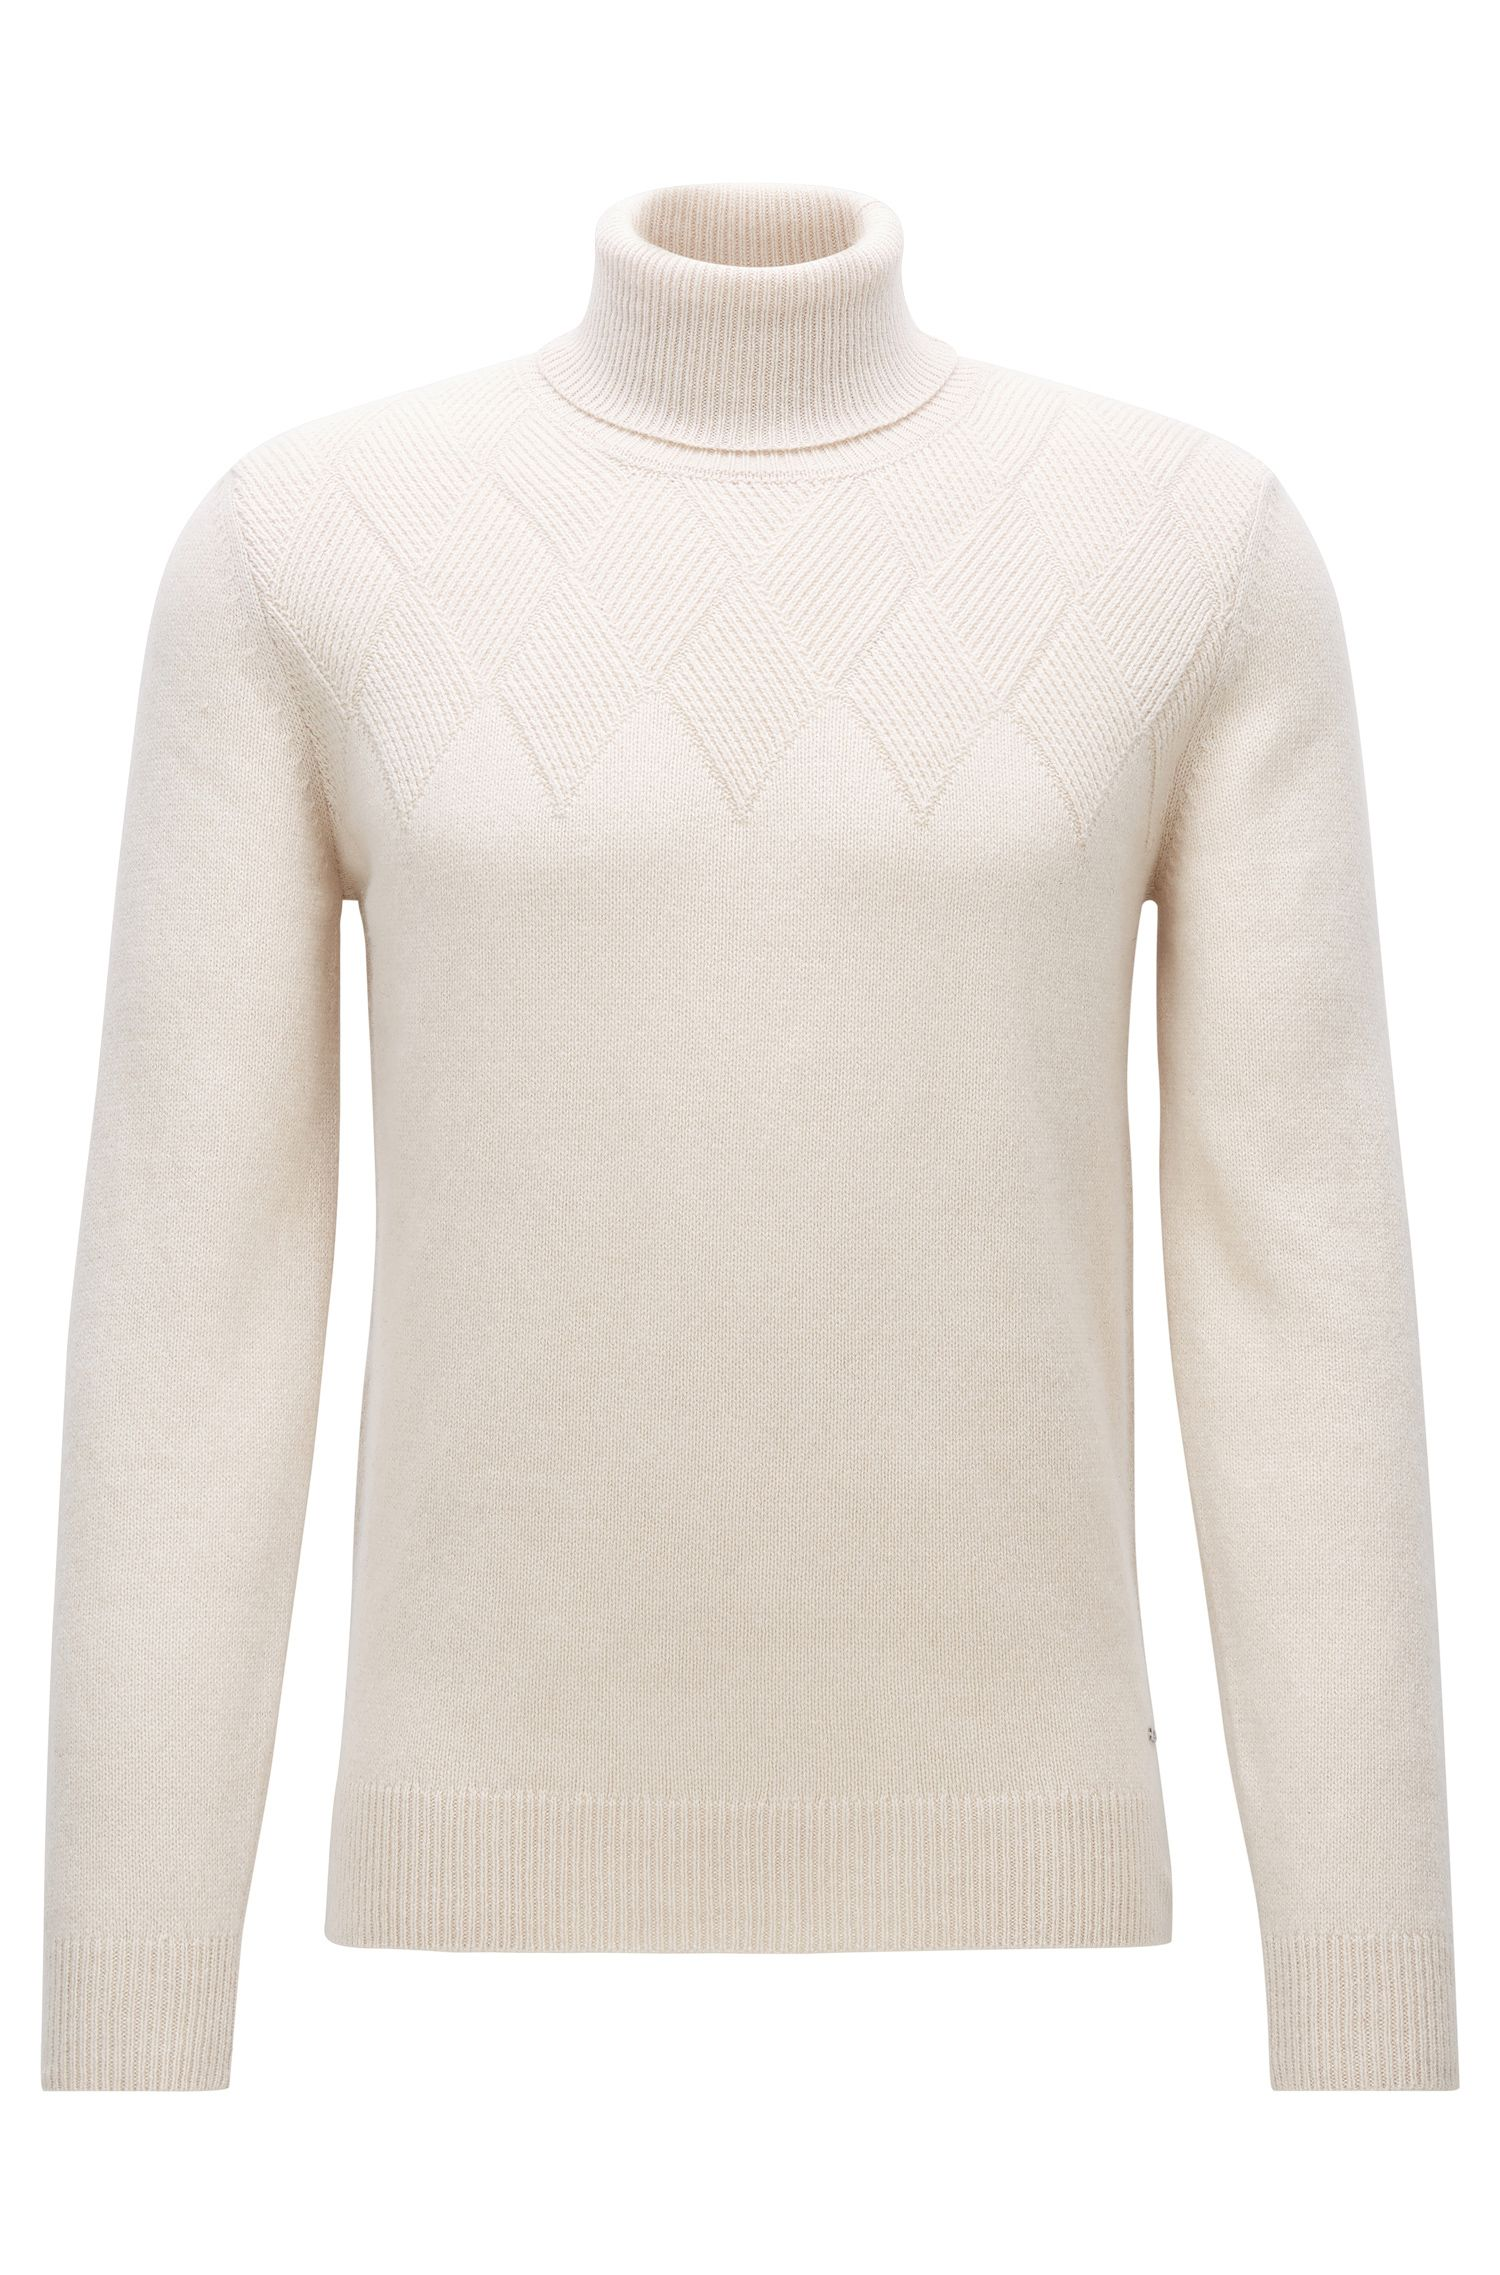 'T-Nuvolino' | Cashmere-Wool Turtleneck Sweater